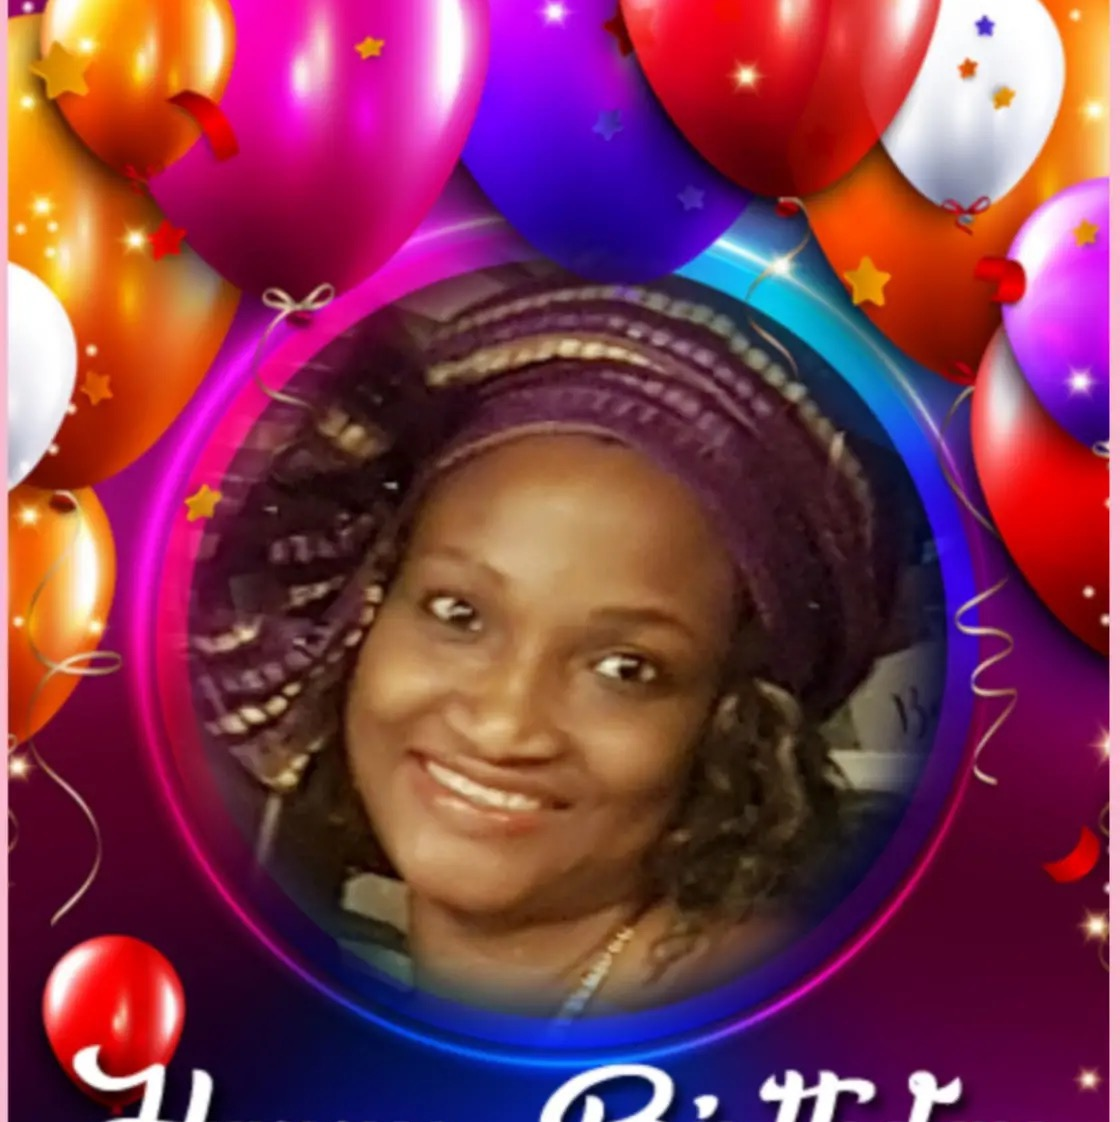 Happy birthday highly esteemed sis